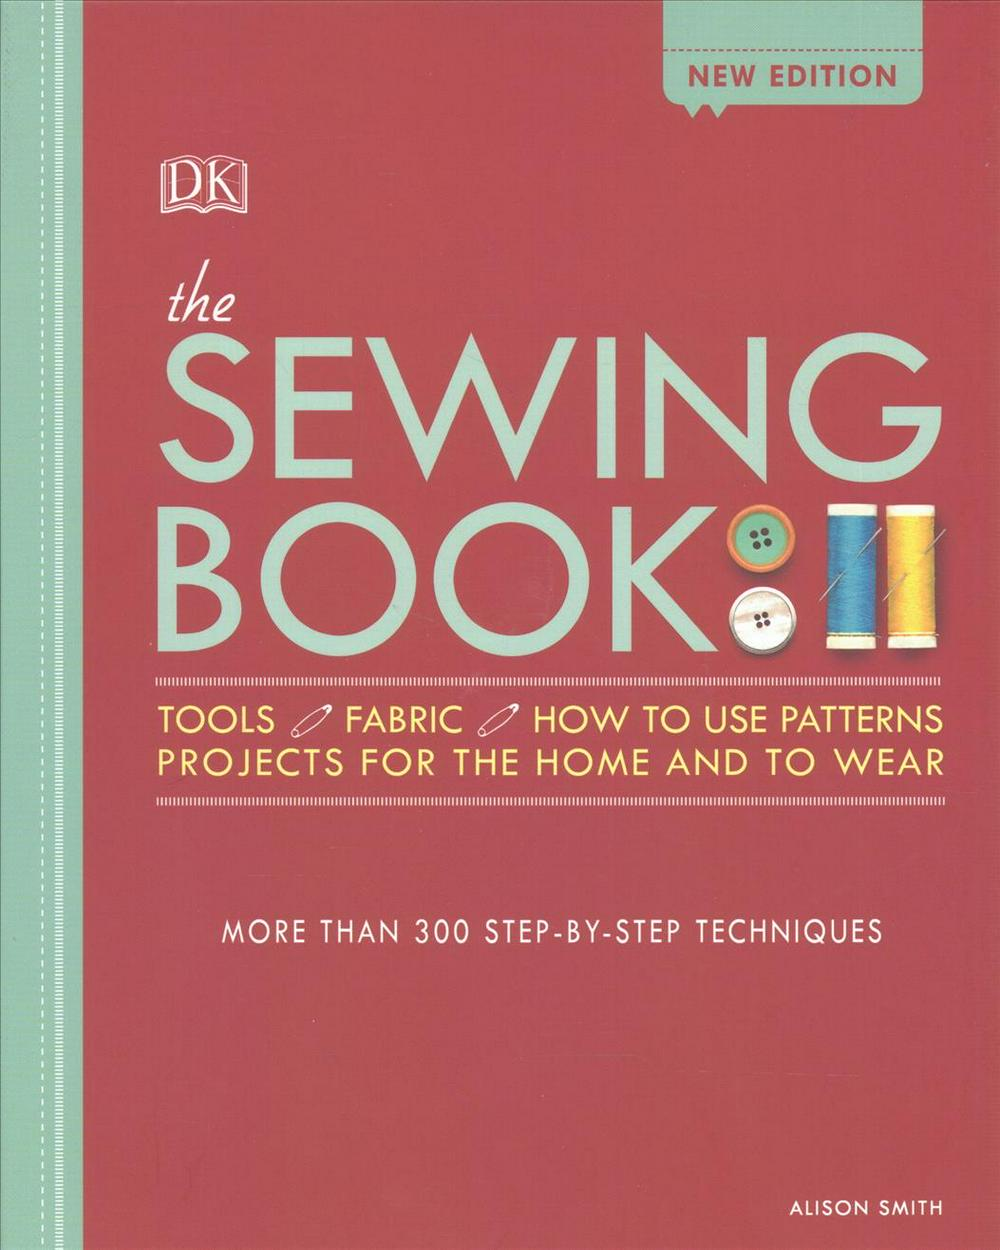 The Sewing Book, 2nd Edition